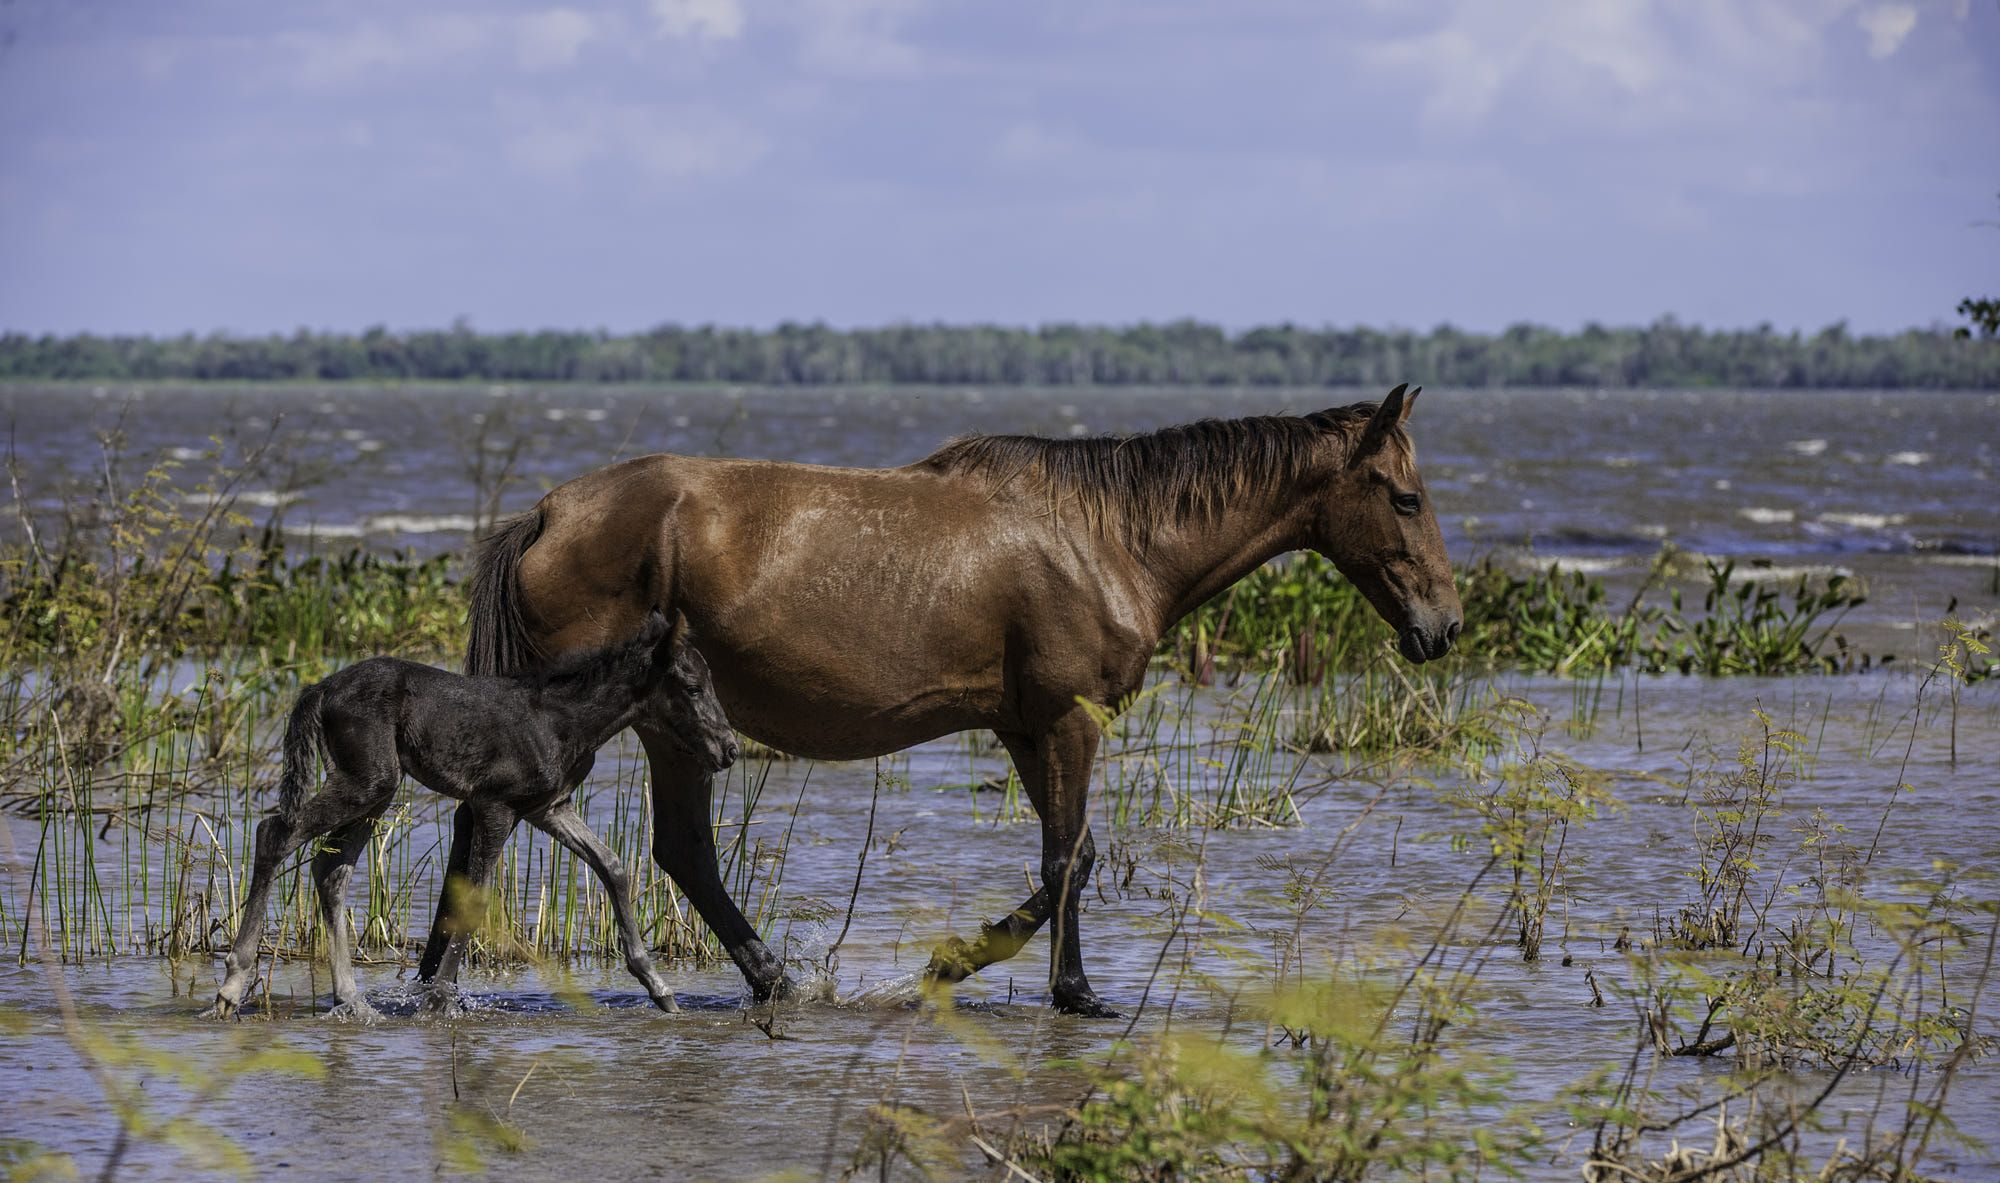 These horses live on the southern shores of Lake Nicaragua. Mum was watching every step.